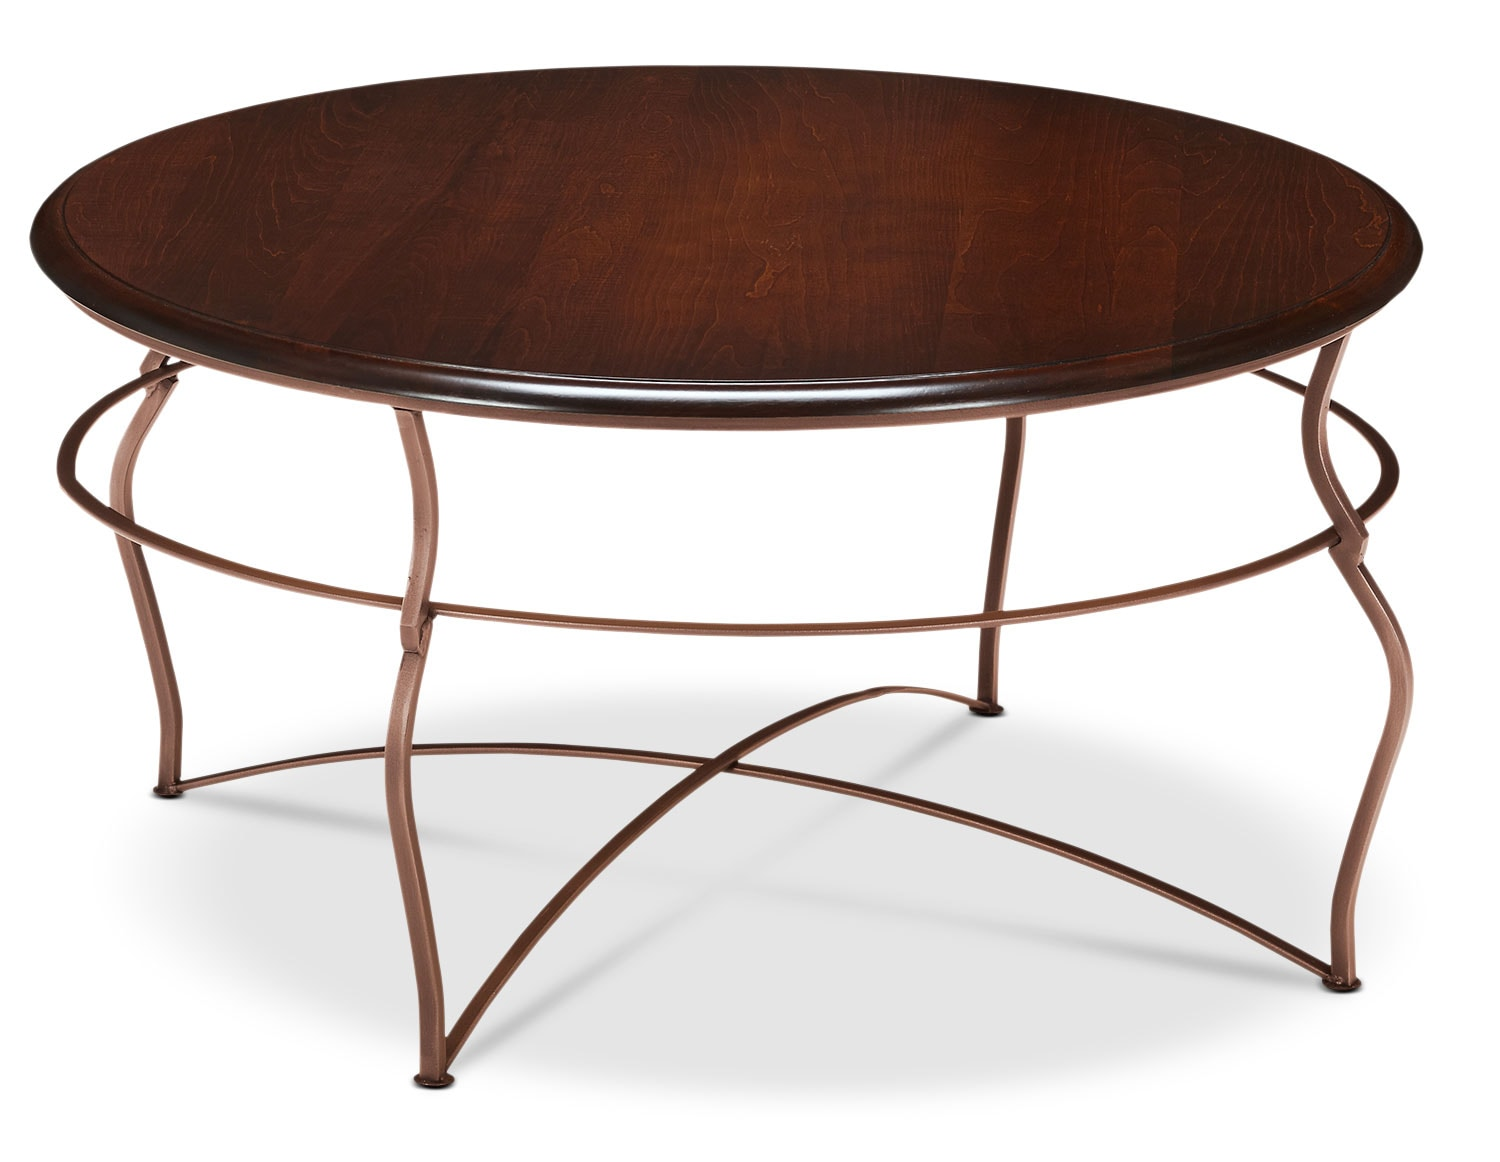 Online Only - Adele Coffee Table - Brown Cherry with Copper Base